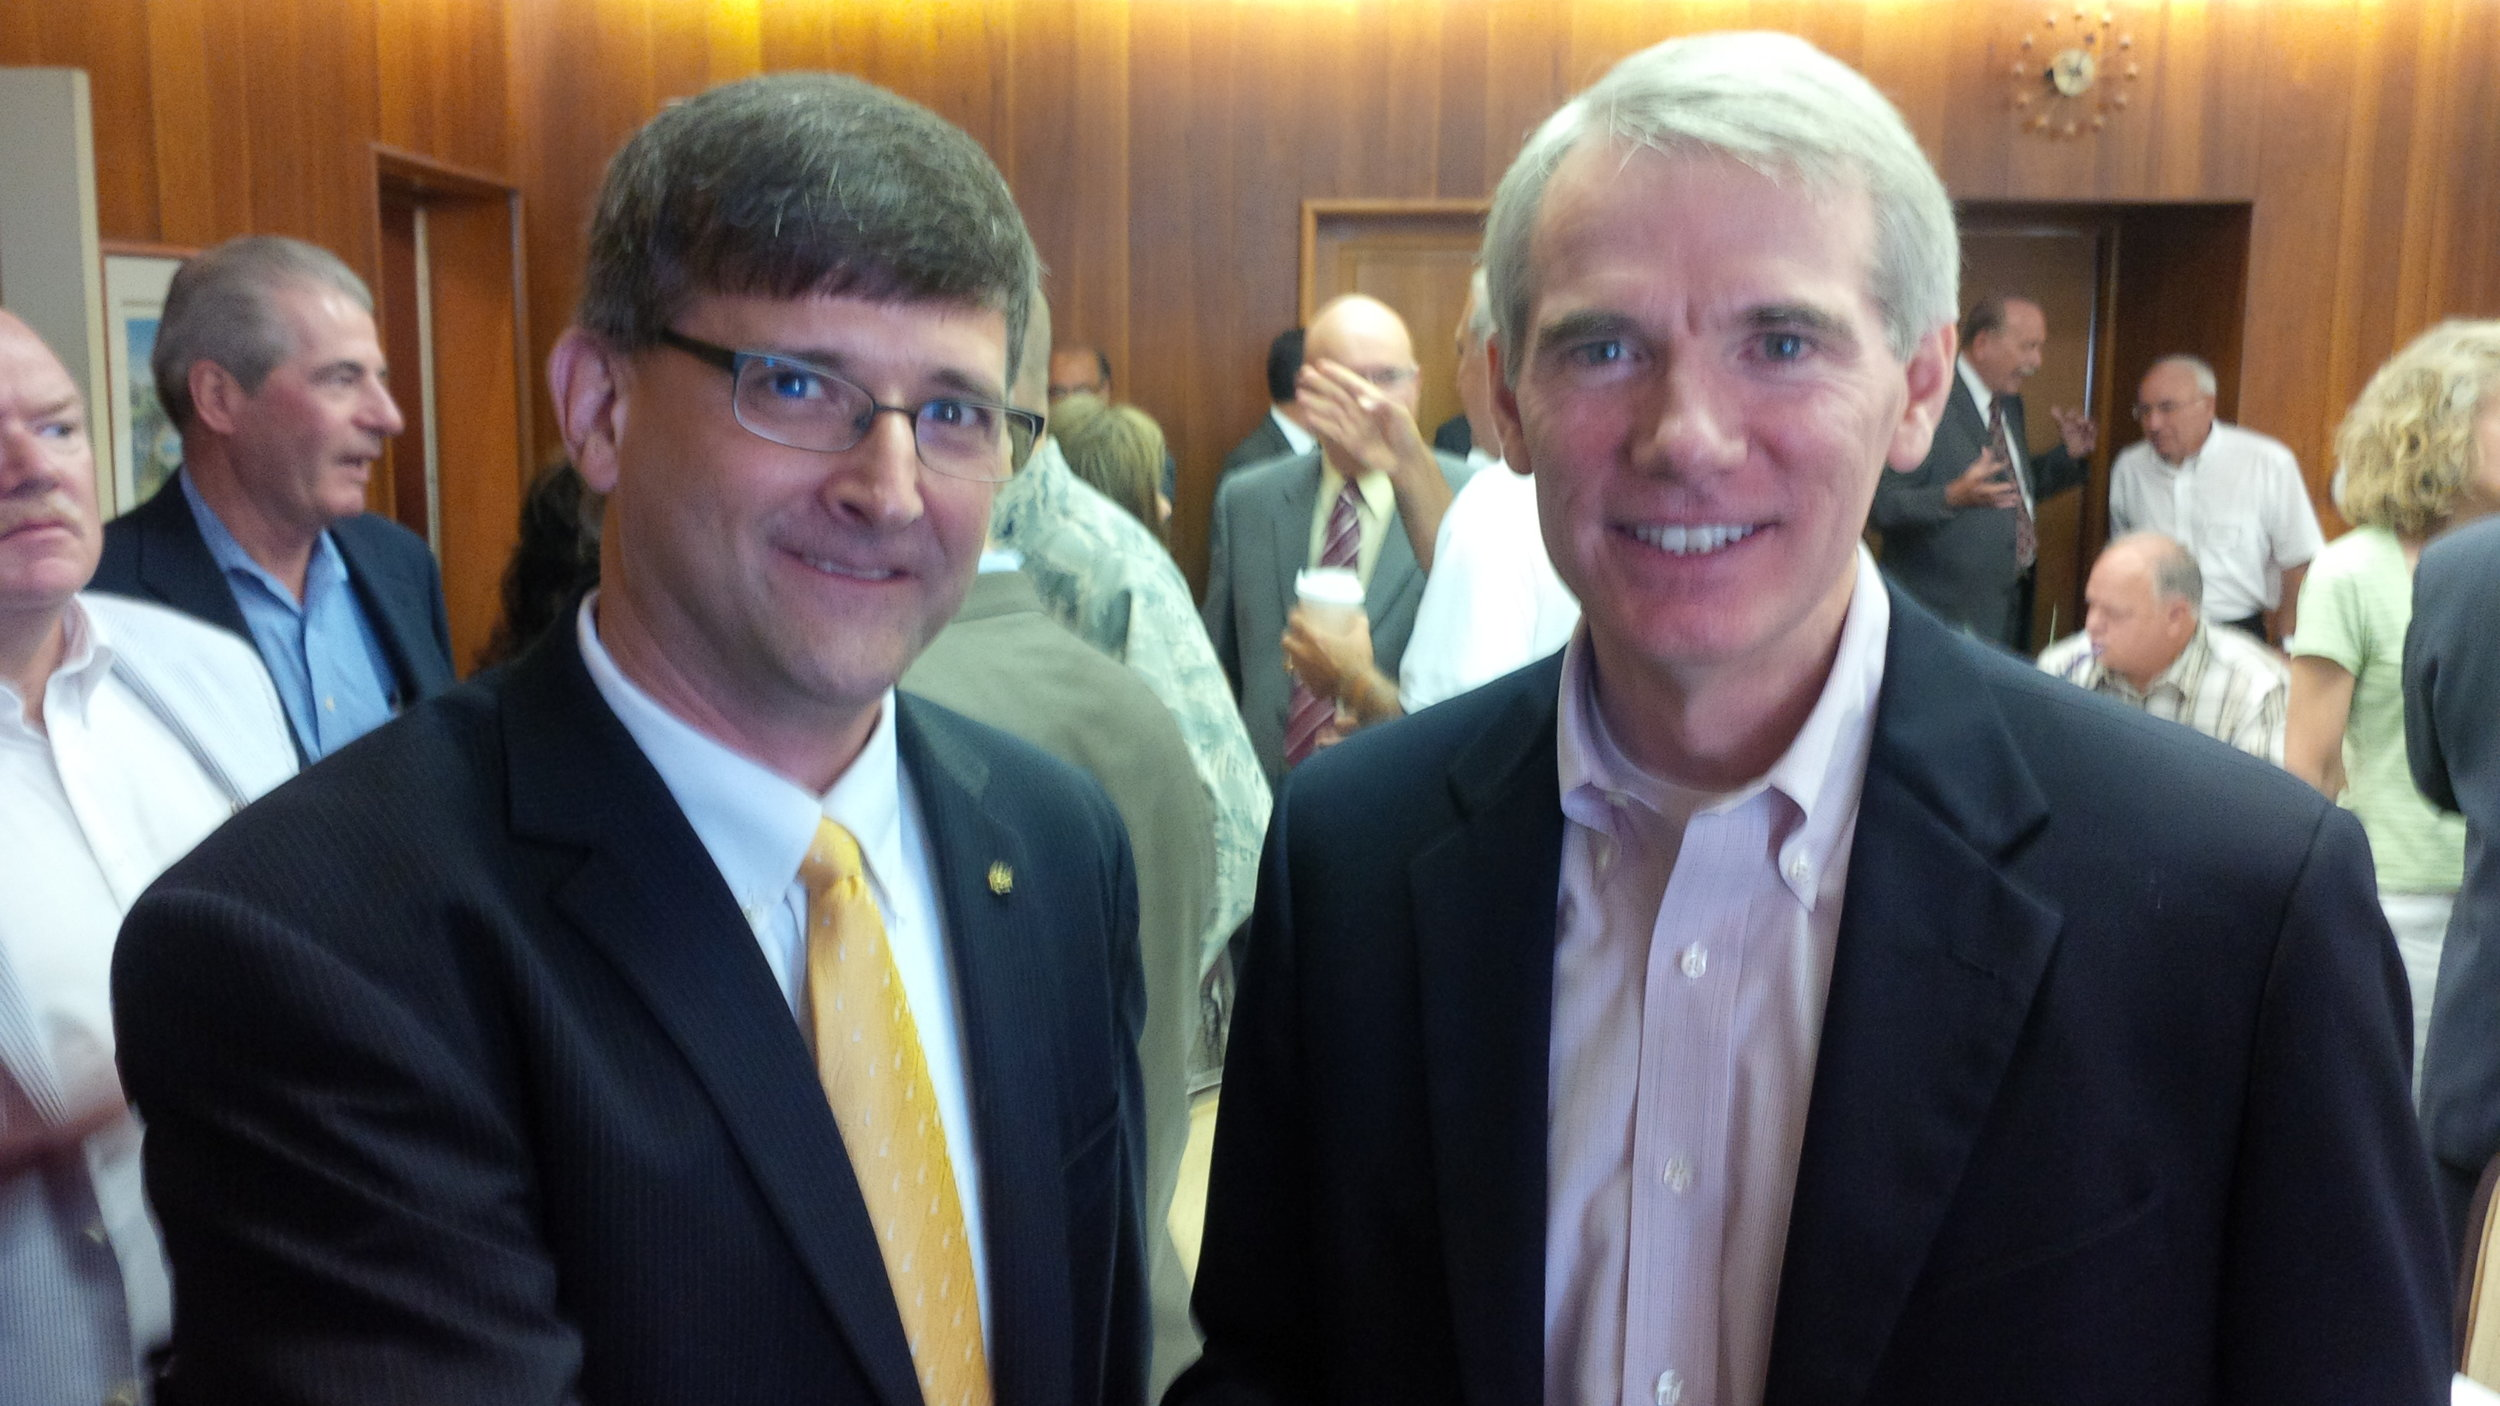 Bruce with Ohio Senator Rob Portman (R-OH) at an in-district meeting to discuss issues important to architects.